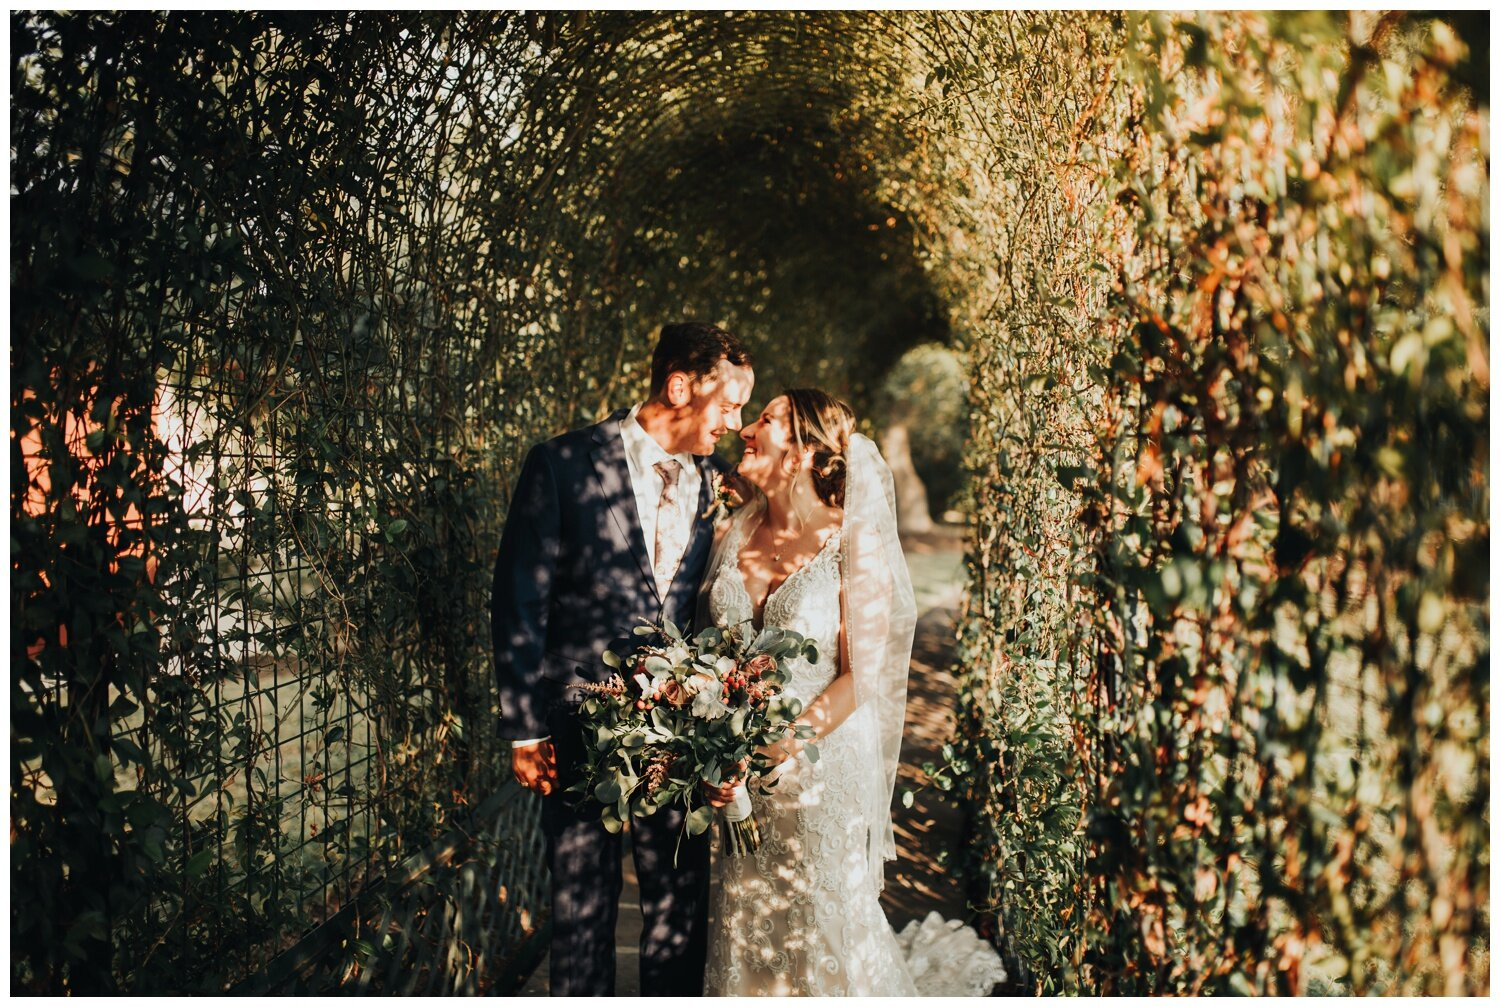 Modern Wedding at Ma Maison in Dripping Springs, Austin, Texas (Joshua and Parisa – Austin Wedding Photographer)_0053.jpg